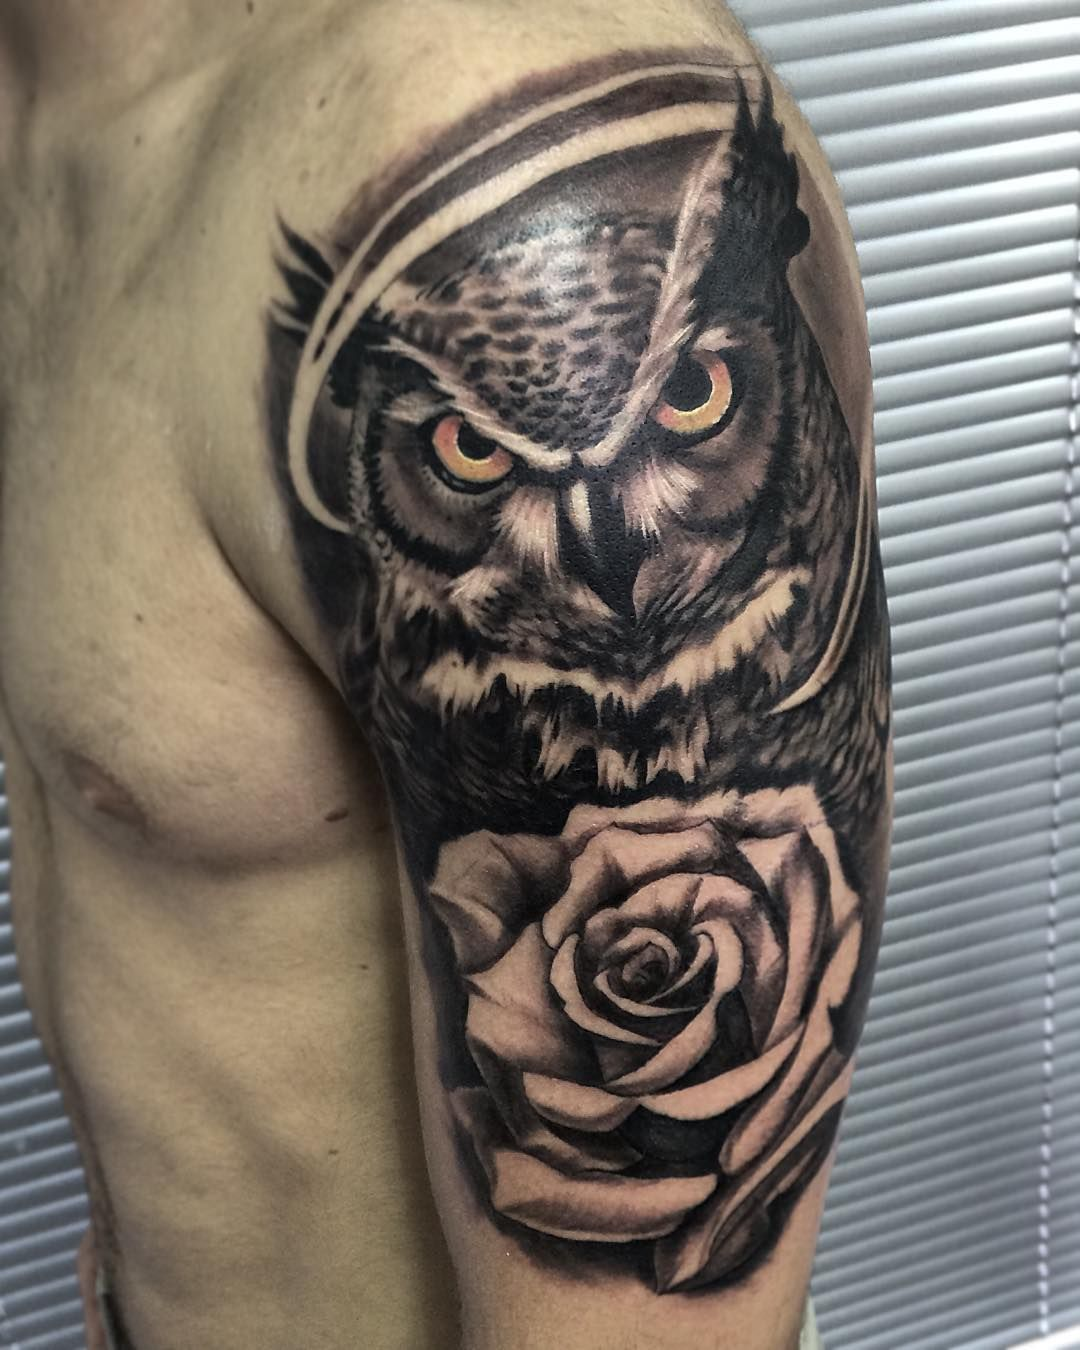 100 Badass Tattoos For Guys: Pin By Larry Fletcher On Tattoos